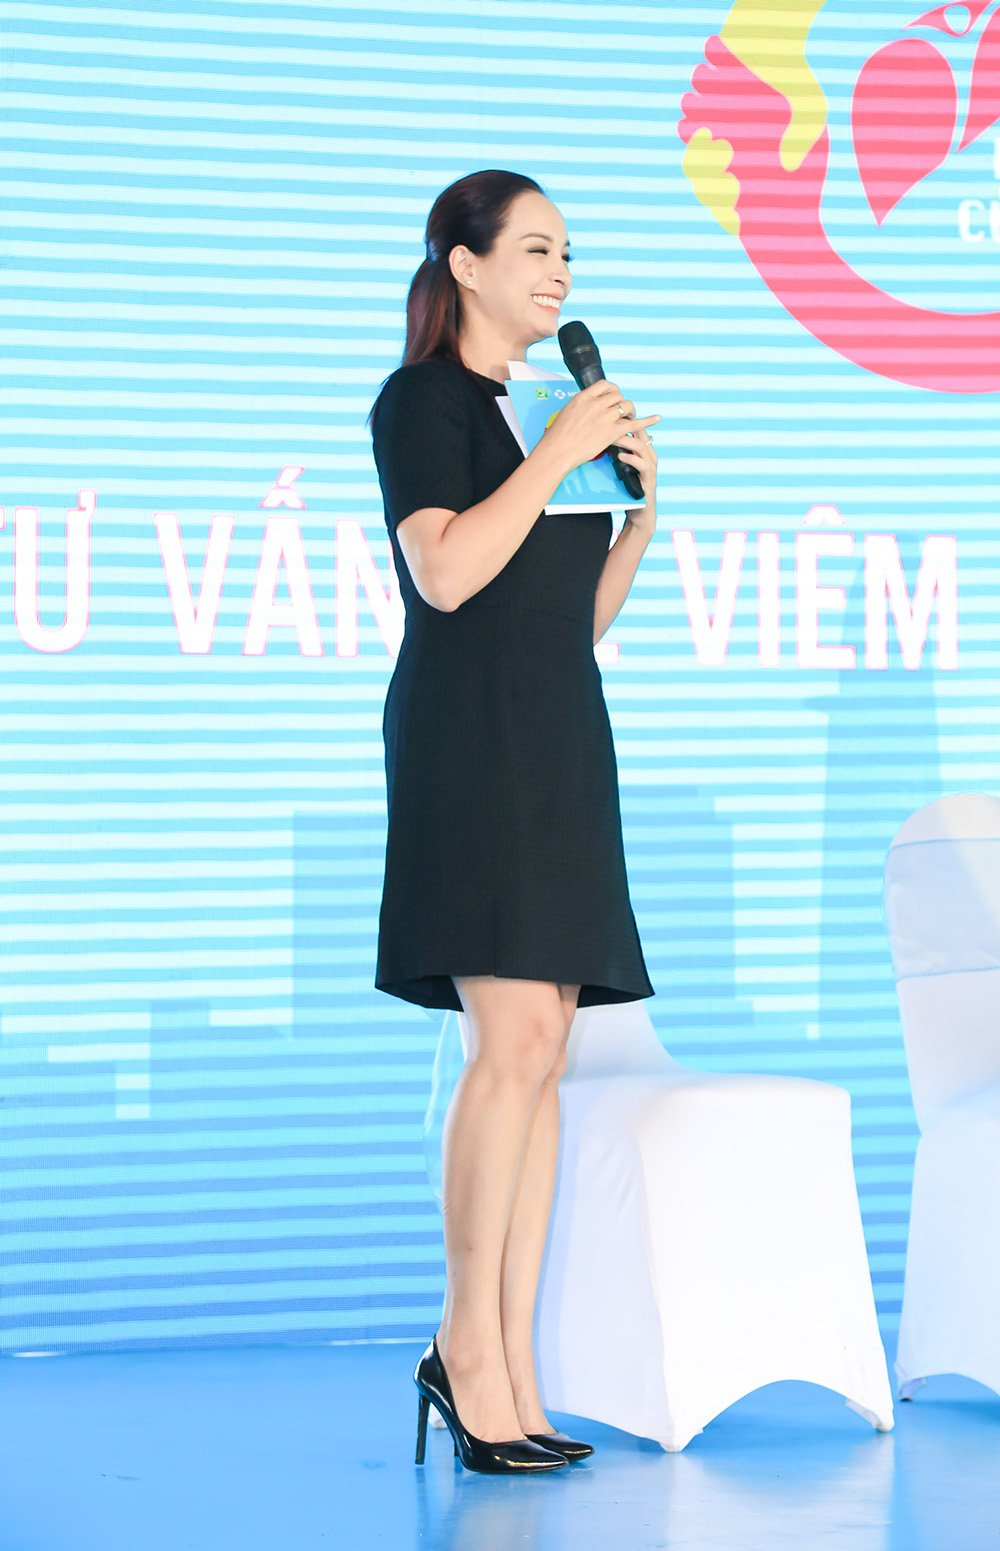 O tuoi 40, Thuy Hanh van tu tin do sac voi nu MC 9x hinh anh 3